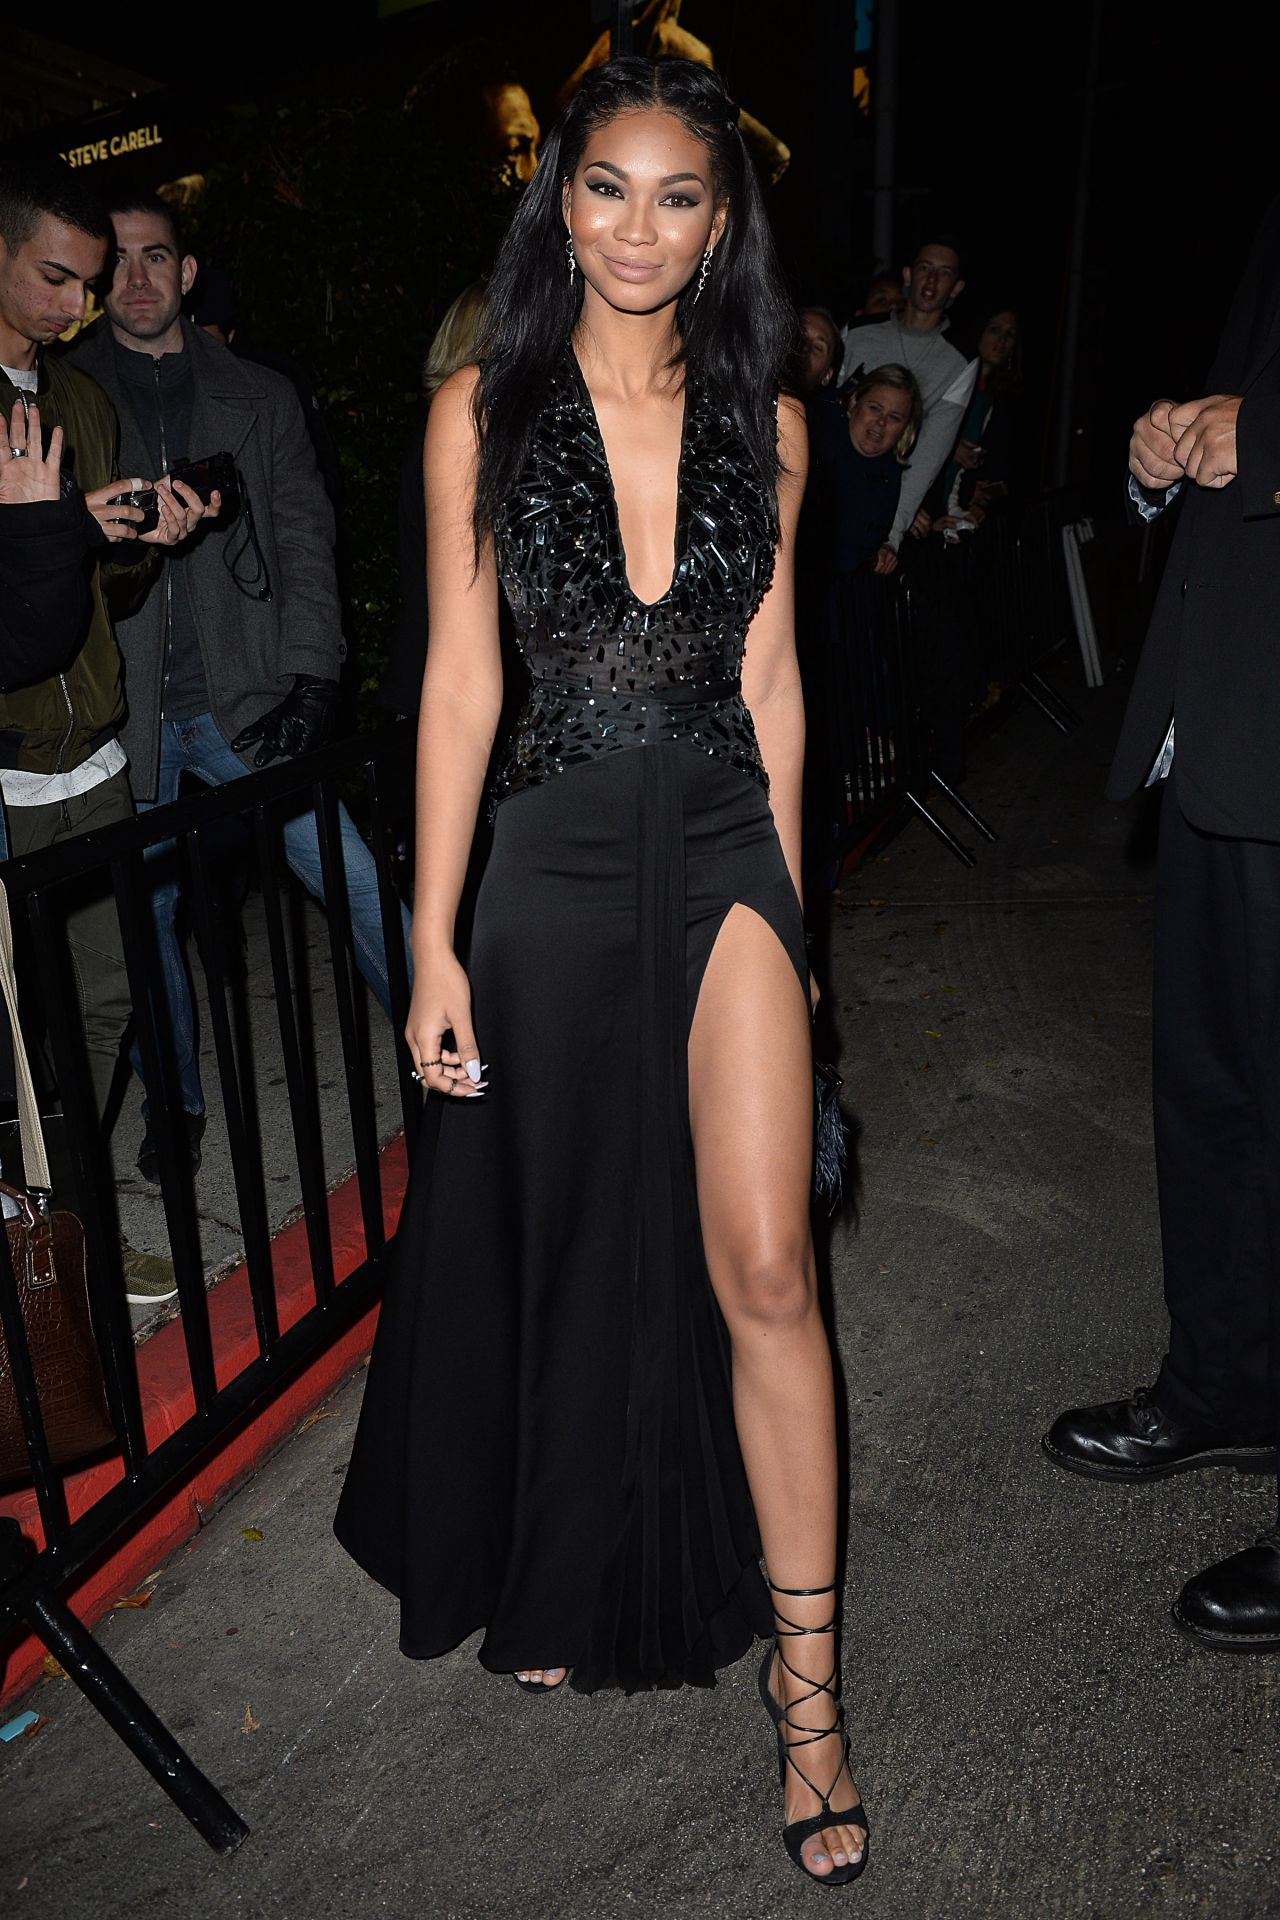 chanel-iman-w-magazine-2016-golden-globe-party-in-los-angeles-1